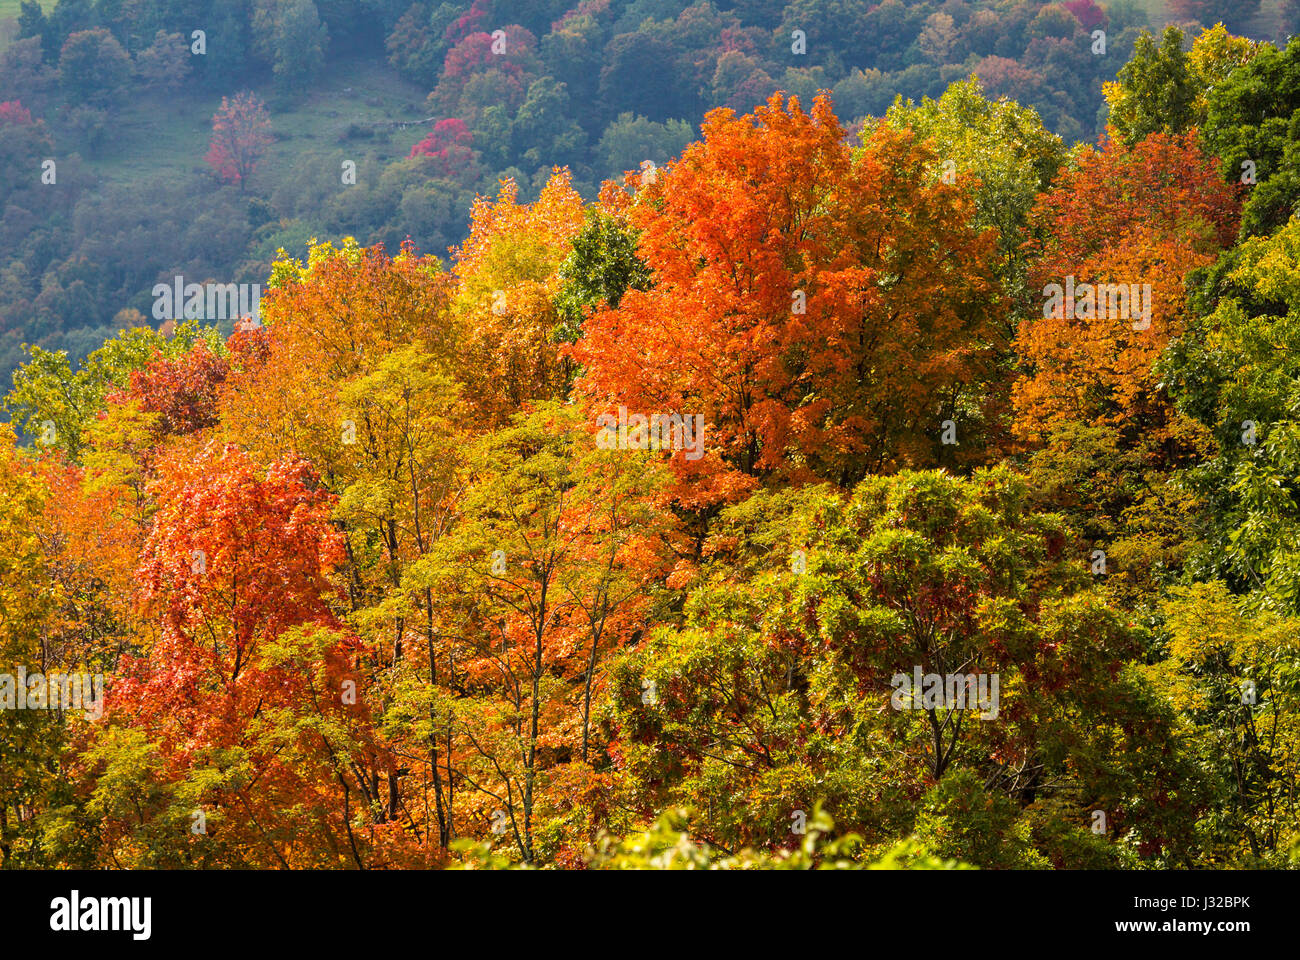 Autumn fall leaves in the Monongahela National Forest, Allegheny Mountains, West Virginia, USA with hills in the - Stock Image